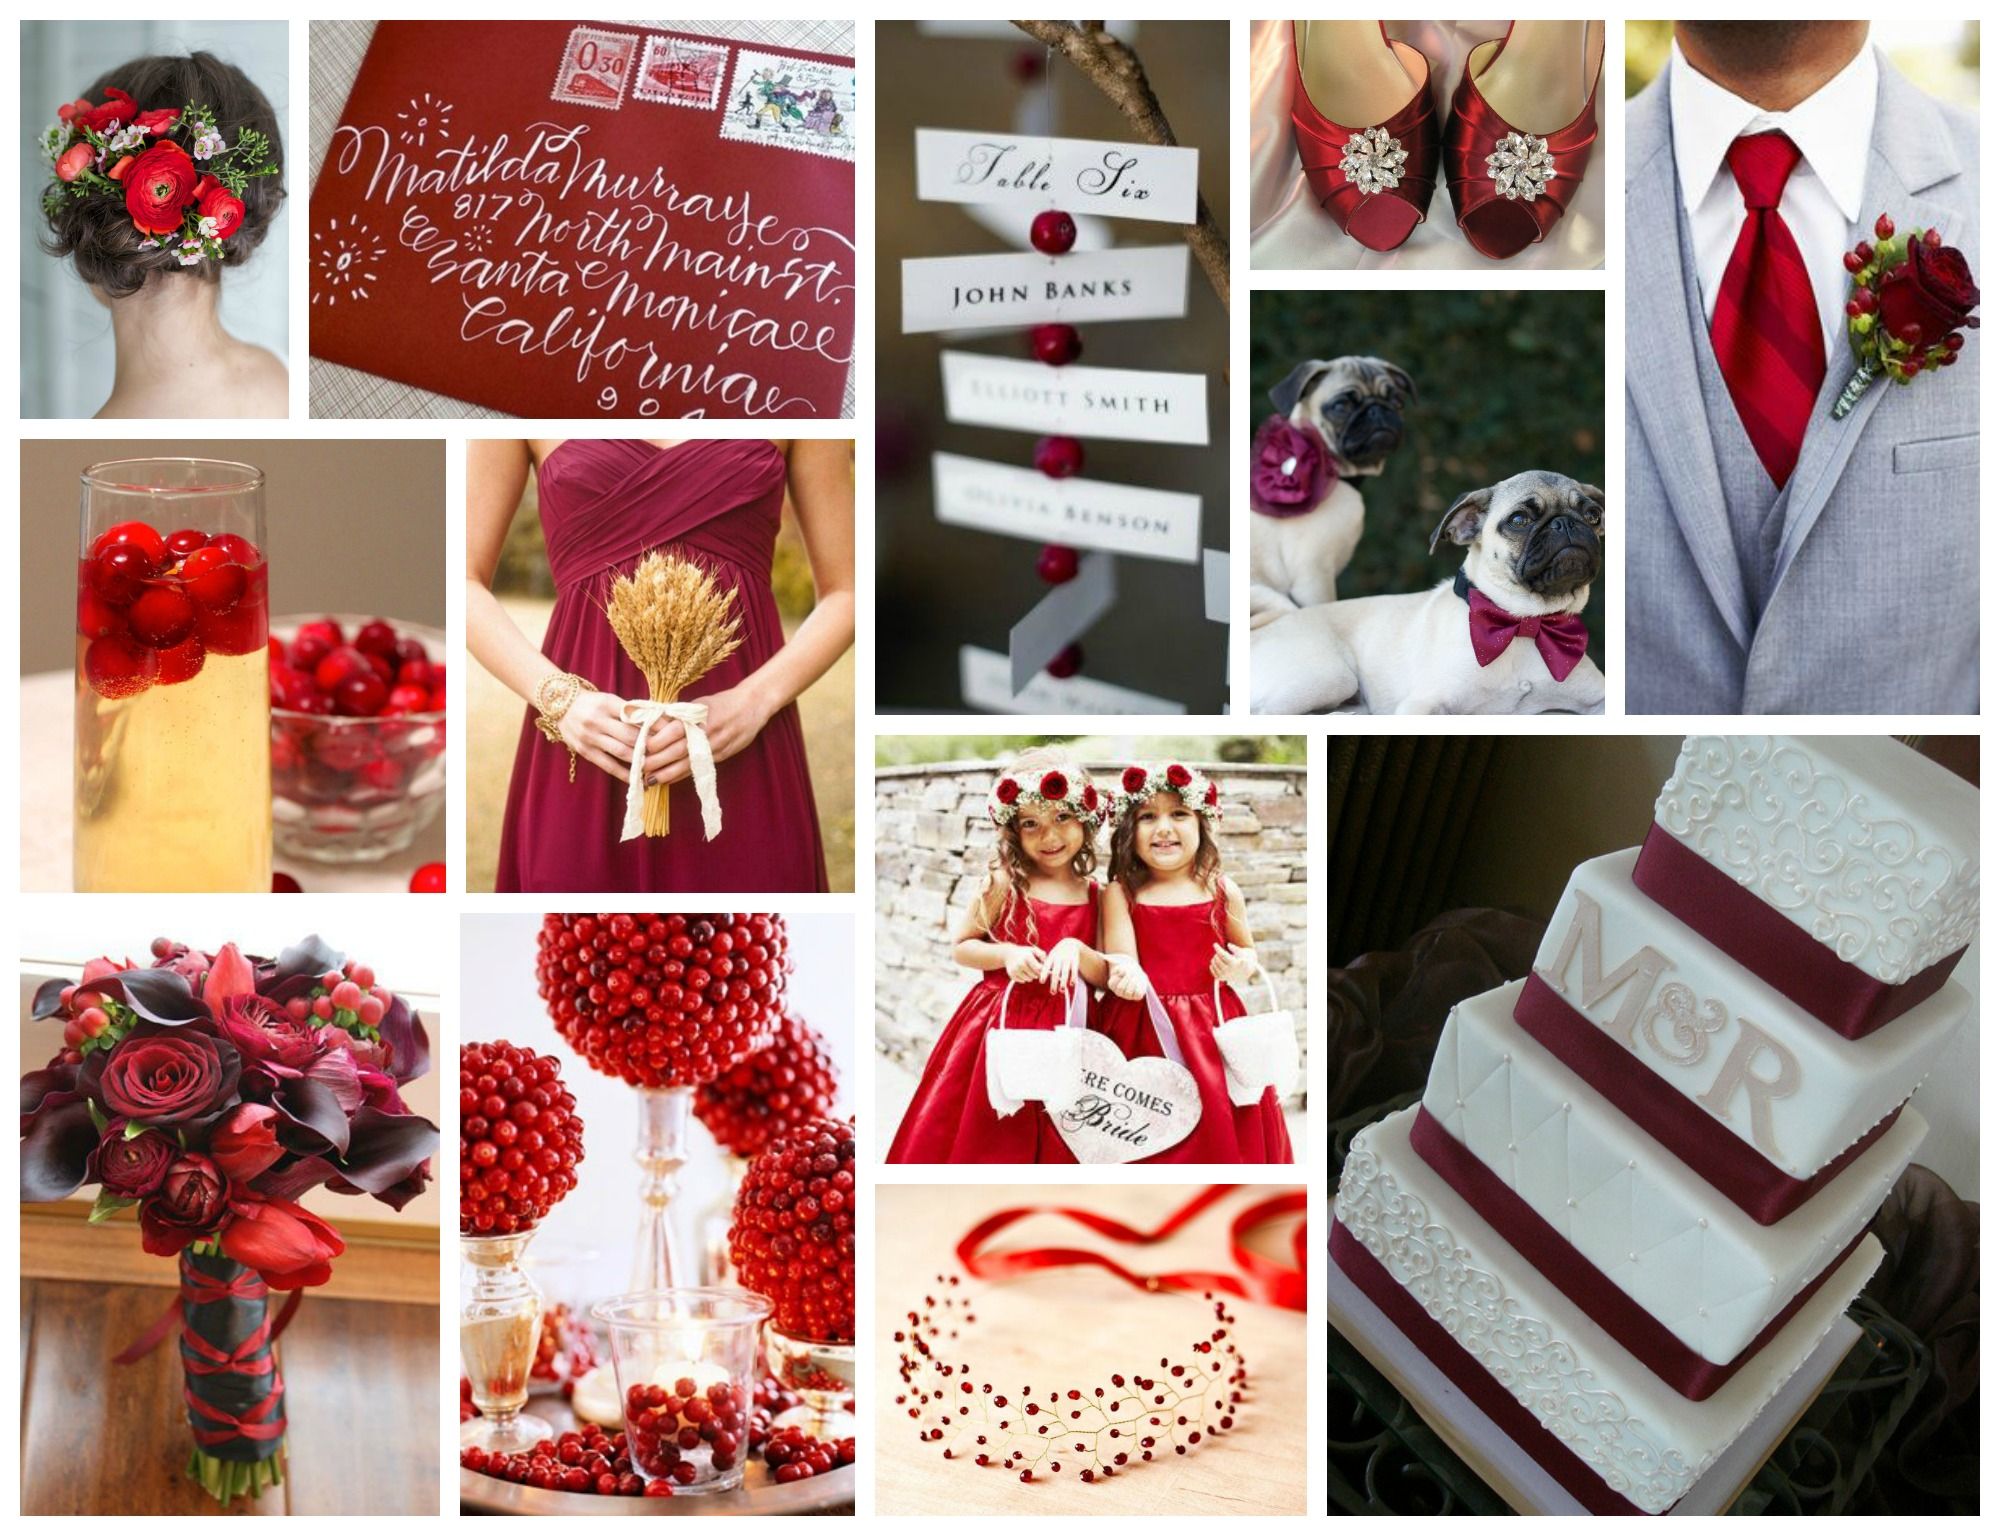 Theme For Administrative Professionals Day 2015 | just b.CAUSE